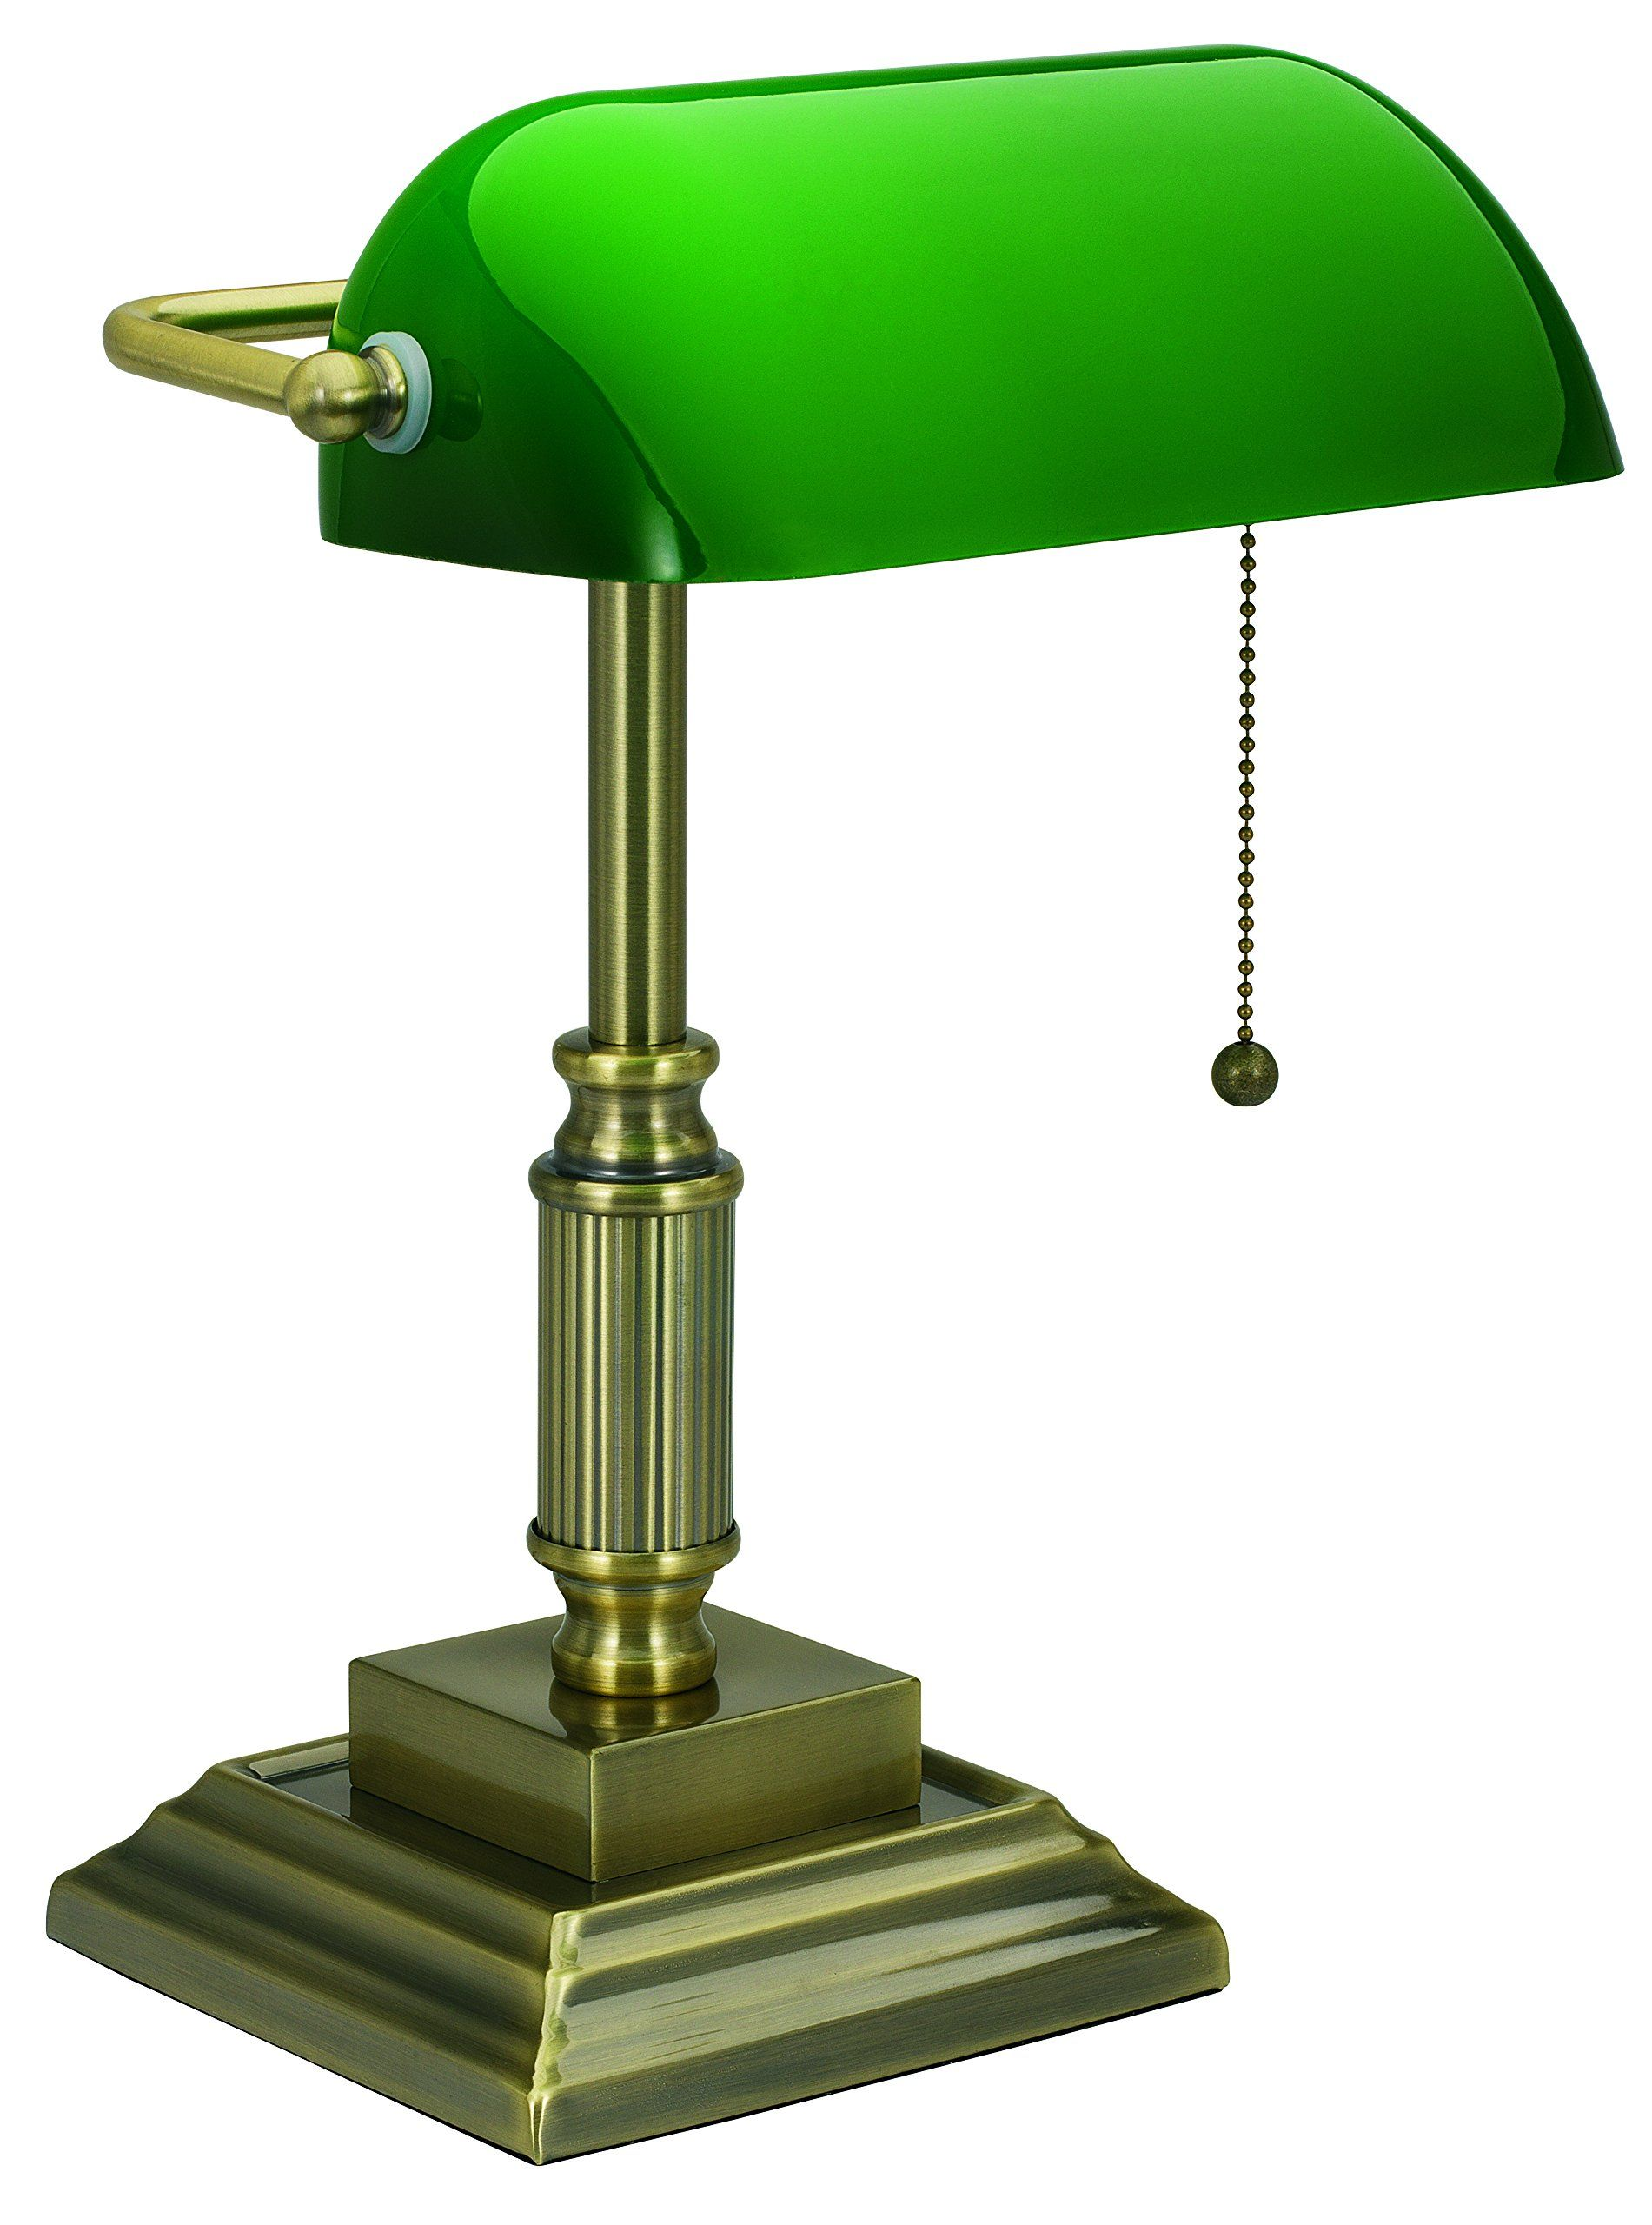 Amazon Com V Light Traditional Style Cfl Banker S Desk Lamp With Green Glass Shade Vs688029ab Office Pro Bankers Desk Lamp Traditional Desk Lamps Desk Lamp